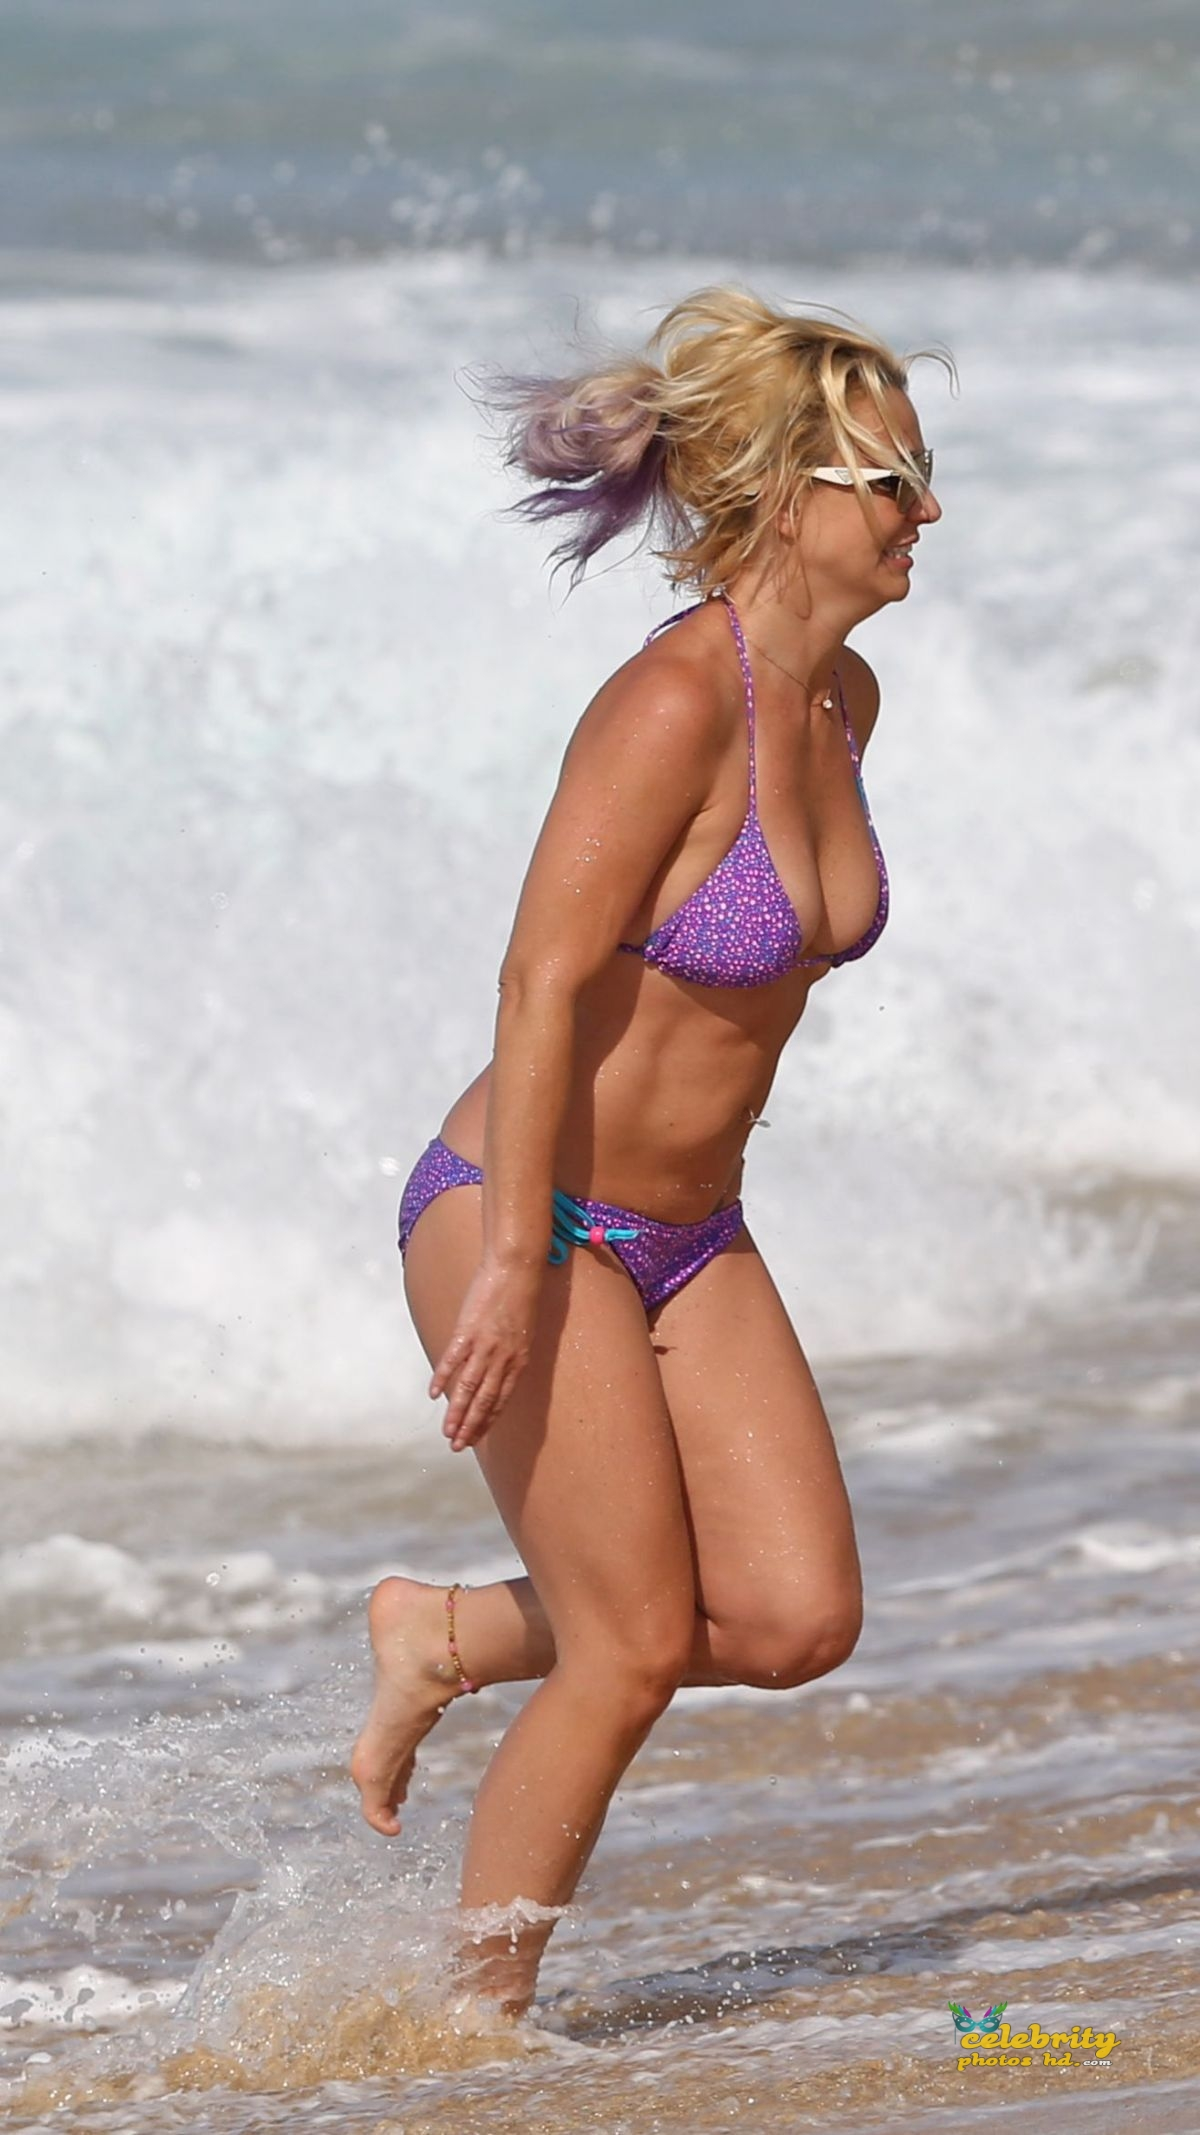 britney-spears-in-bikini-at-a-beach-in-hawaii-07-23-2015_5